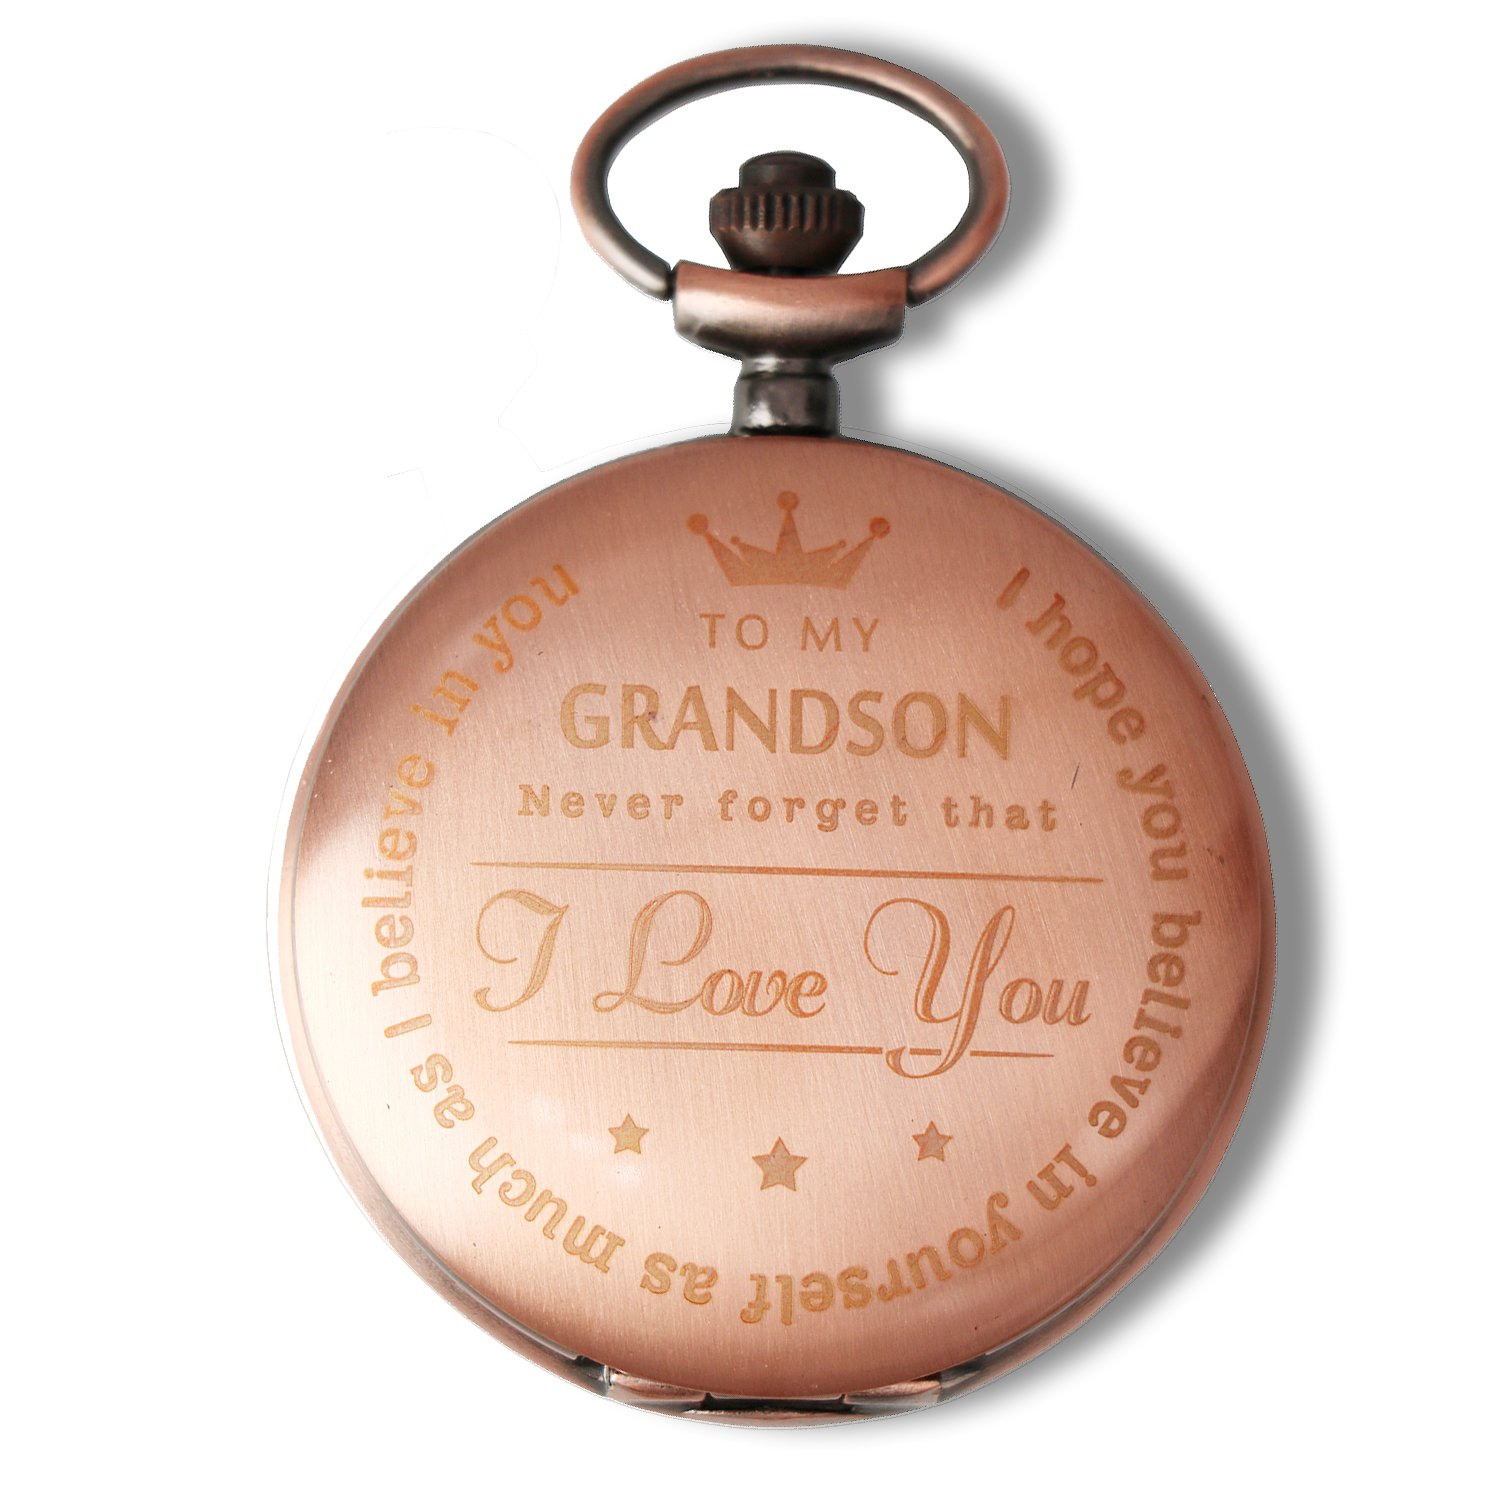 Mainbed Engraved Pocket watch,to grandson Gifts From a Grandpa, GrandMa by Mainbed